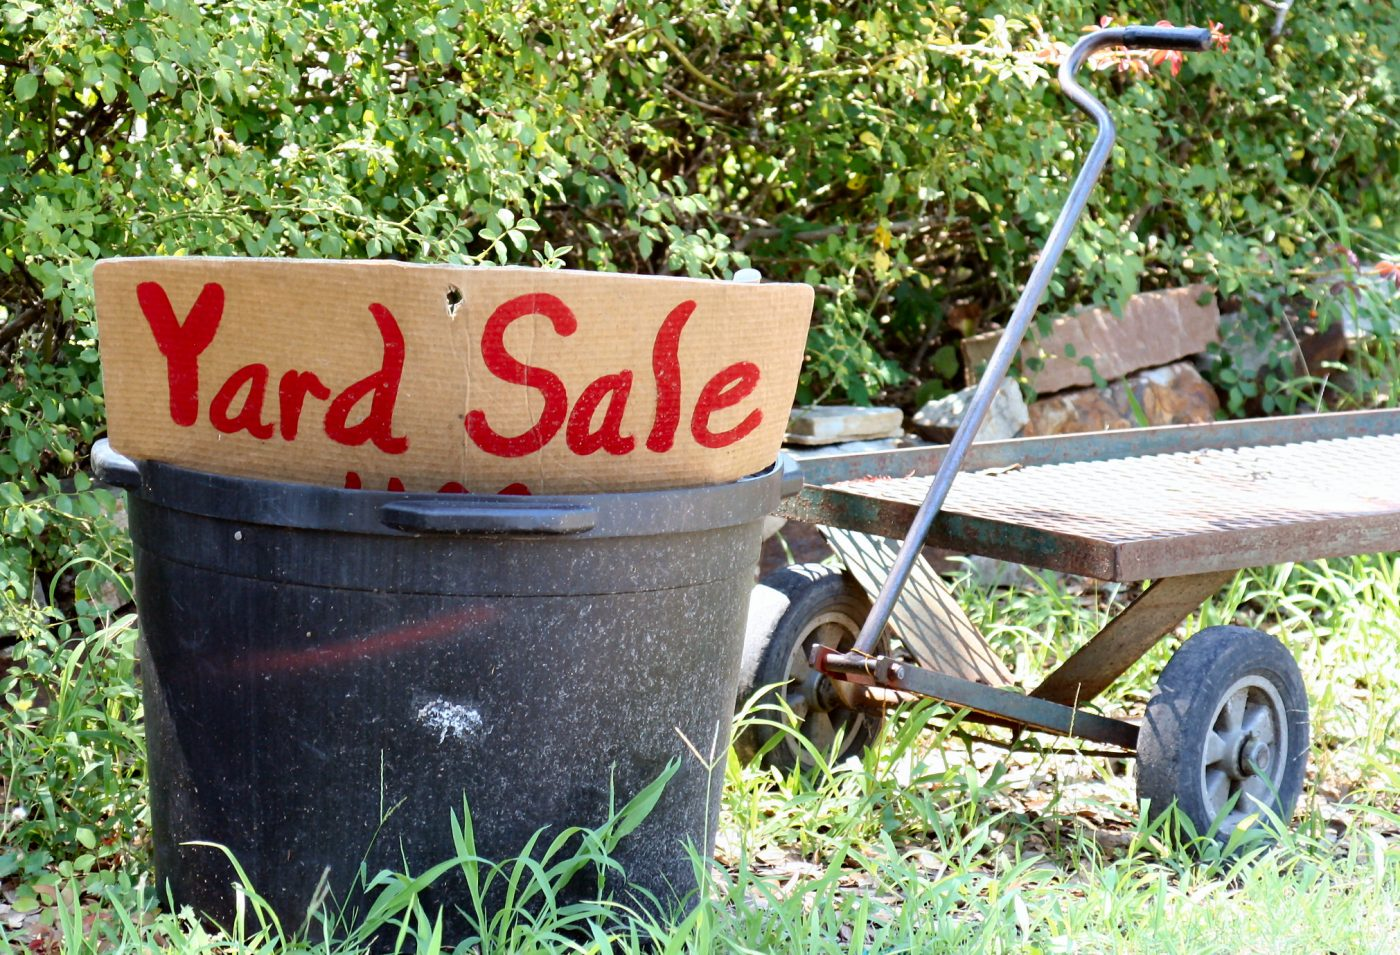 yard-sale-1228574-freeimages-by-cheryl-empey